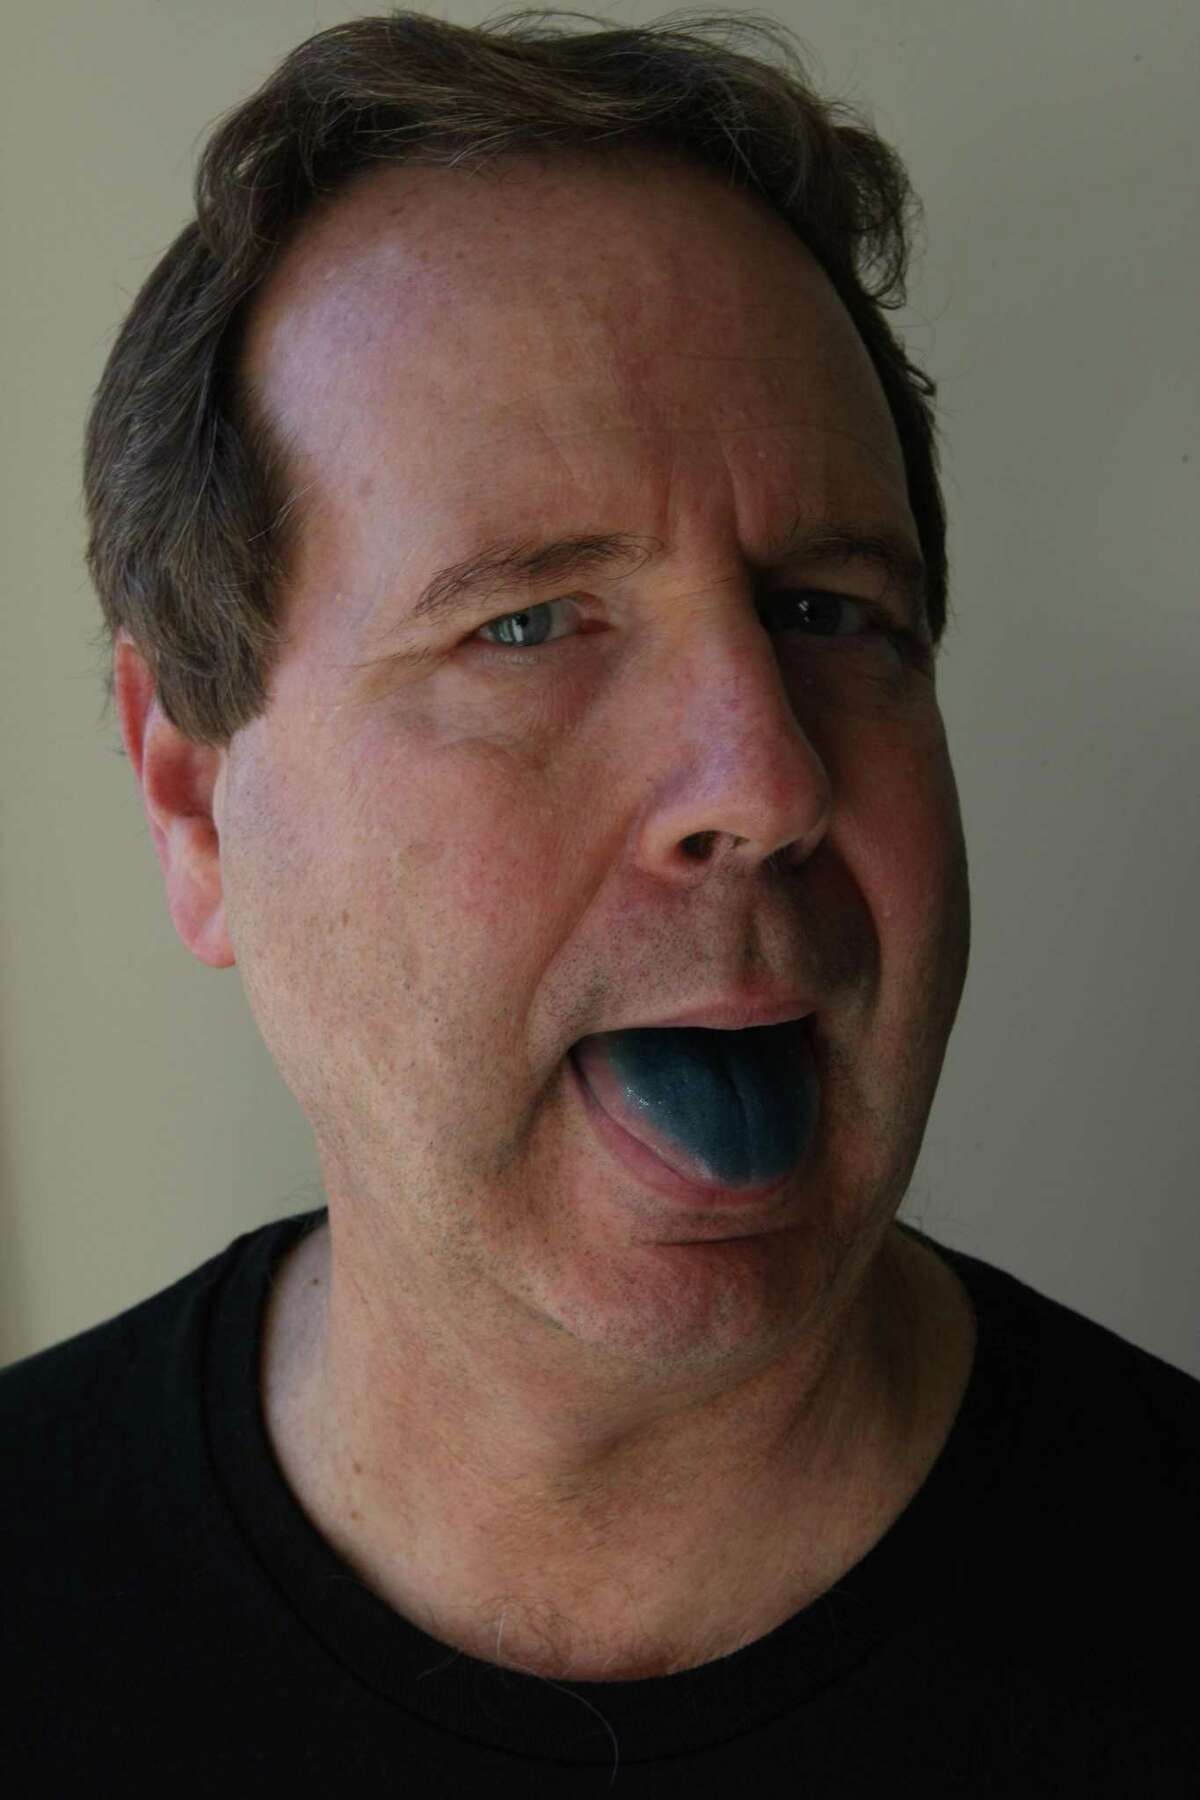 Tim Hanni has a way of determining what kind of wines one likes by testing buds on the tongue. He tests tongues by photographing them with food color. Hanni will be featured at the upcoming Wine and Food Week in The Woodlands in June.